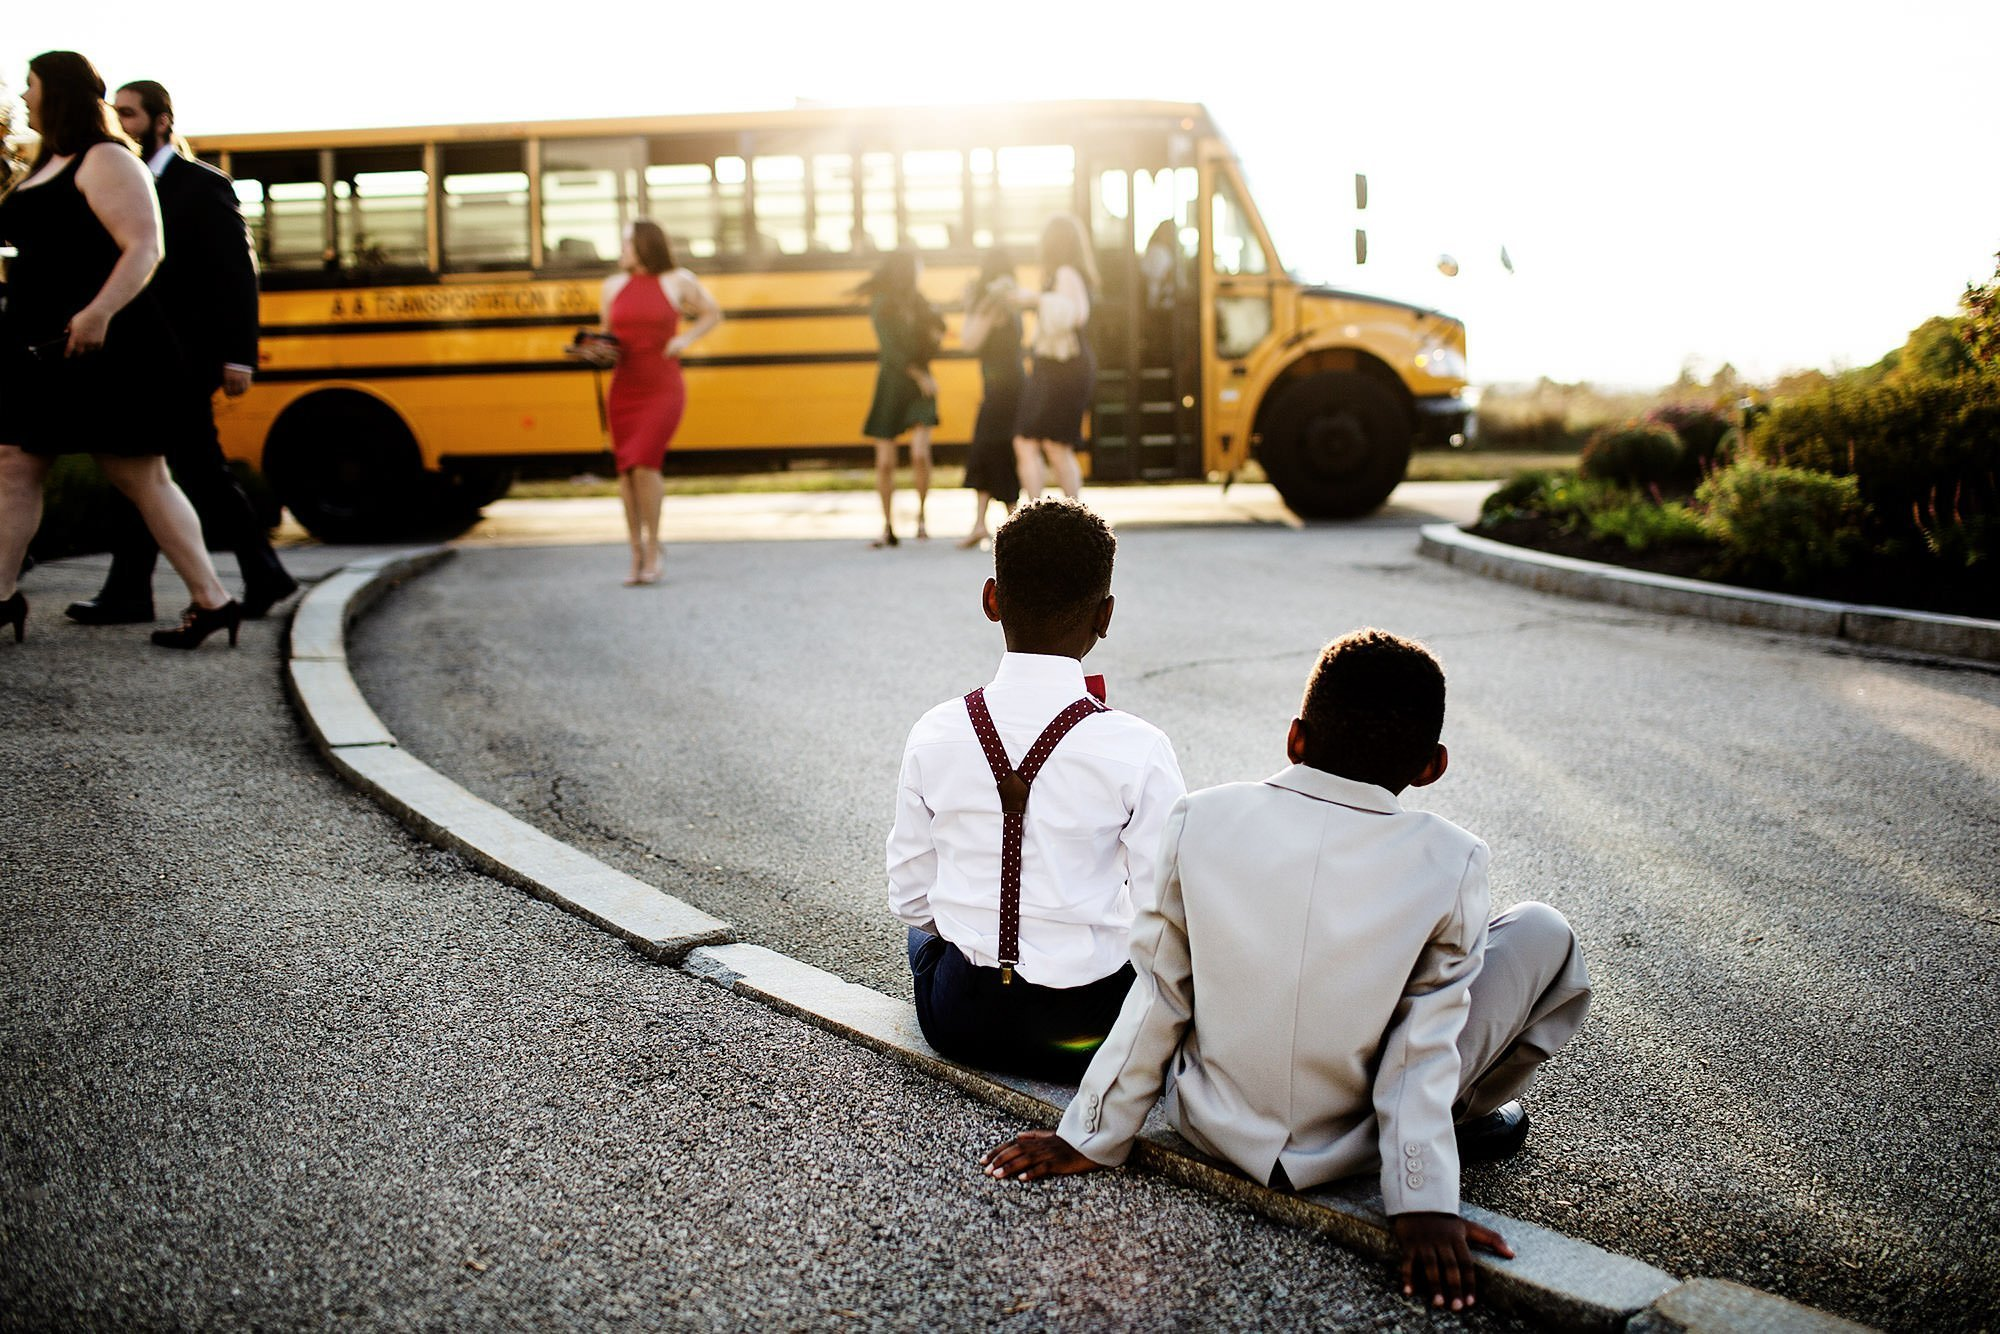 Harrington Farm Wedding  I  Kids watch as a bus brings guests to the ceremony site in Princeton, MA.